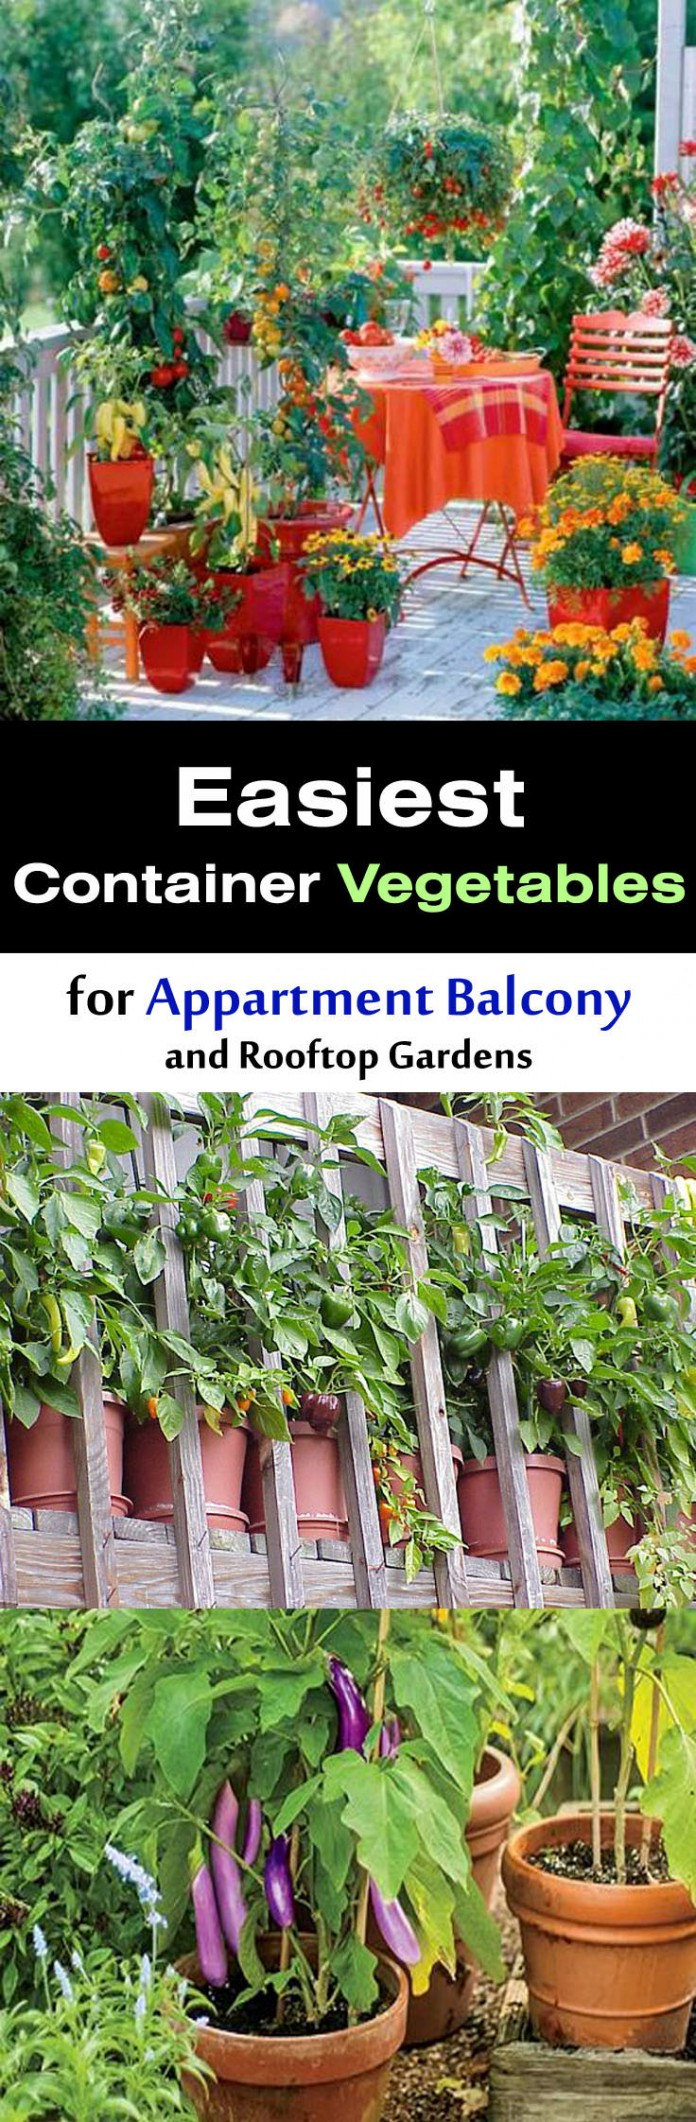 easiest-container-pot-vegetables-for-appartment-balcony-696x2122[1]